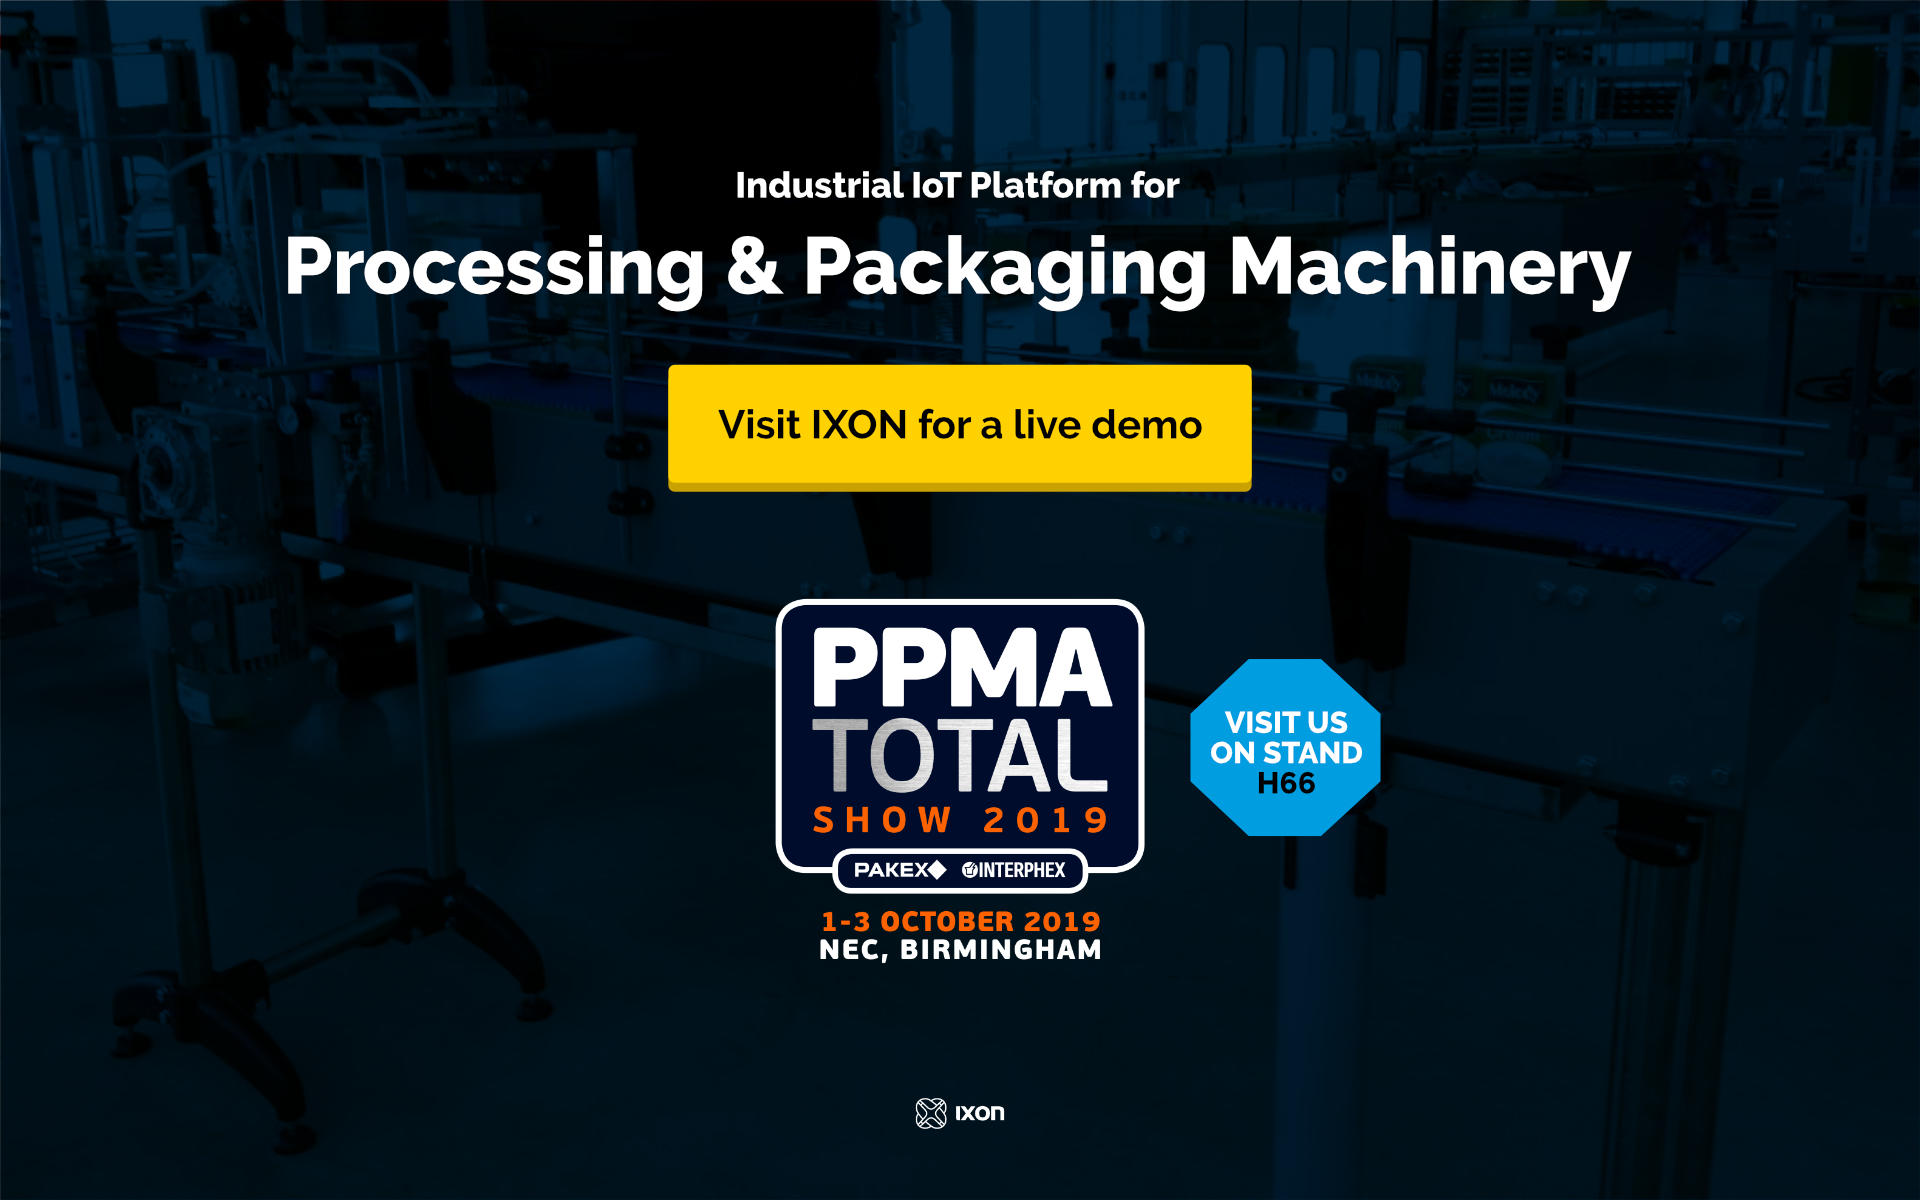 Industrial IoT Platform for Processing & Packaging machinery: Visit IXON Cloud at stand H66 @ PPMA Show 2019